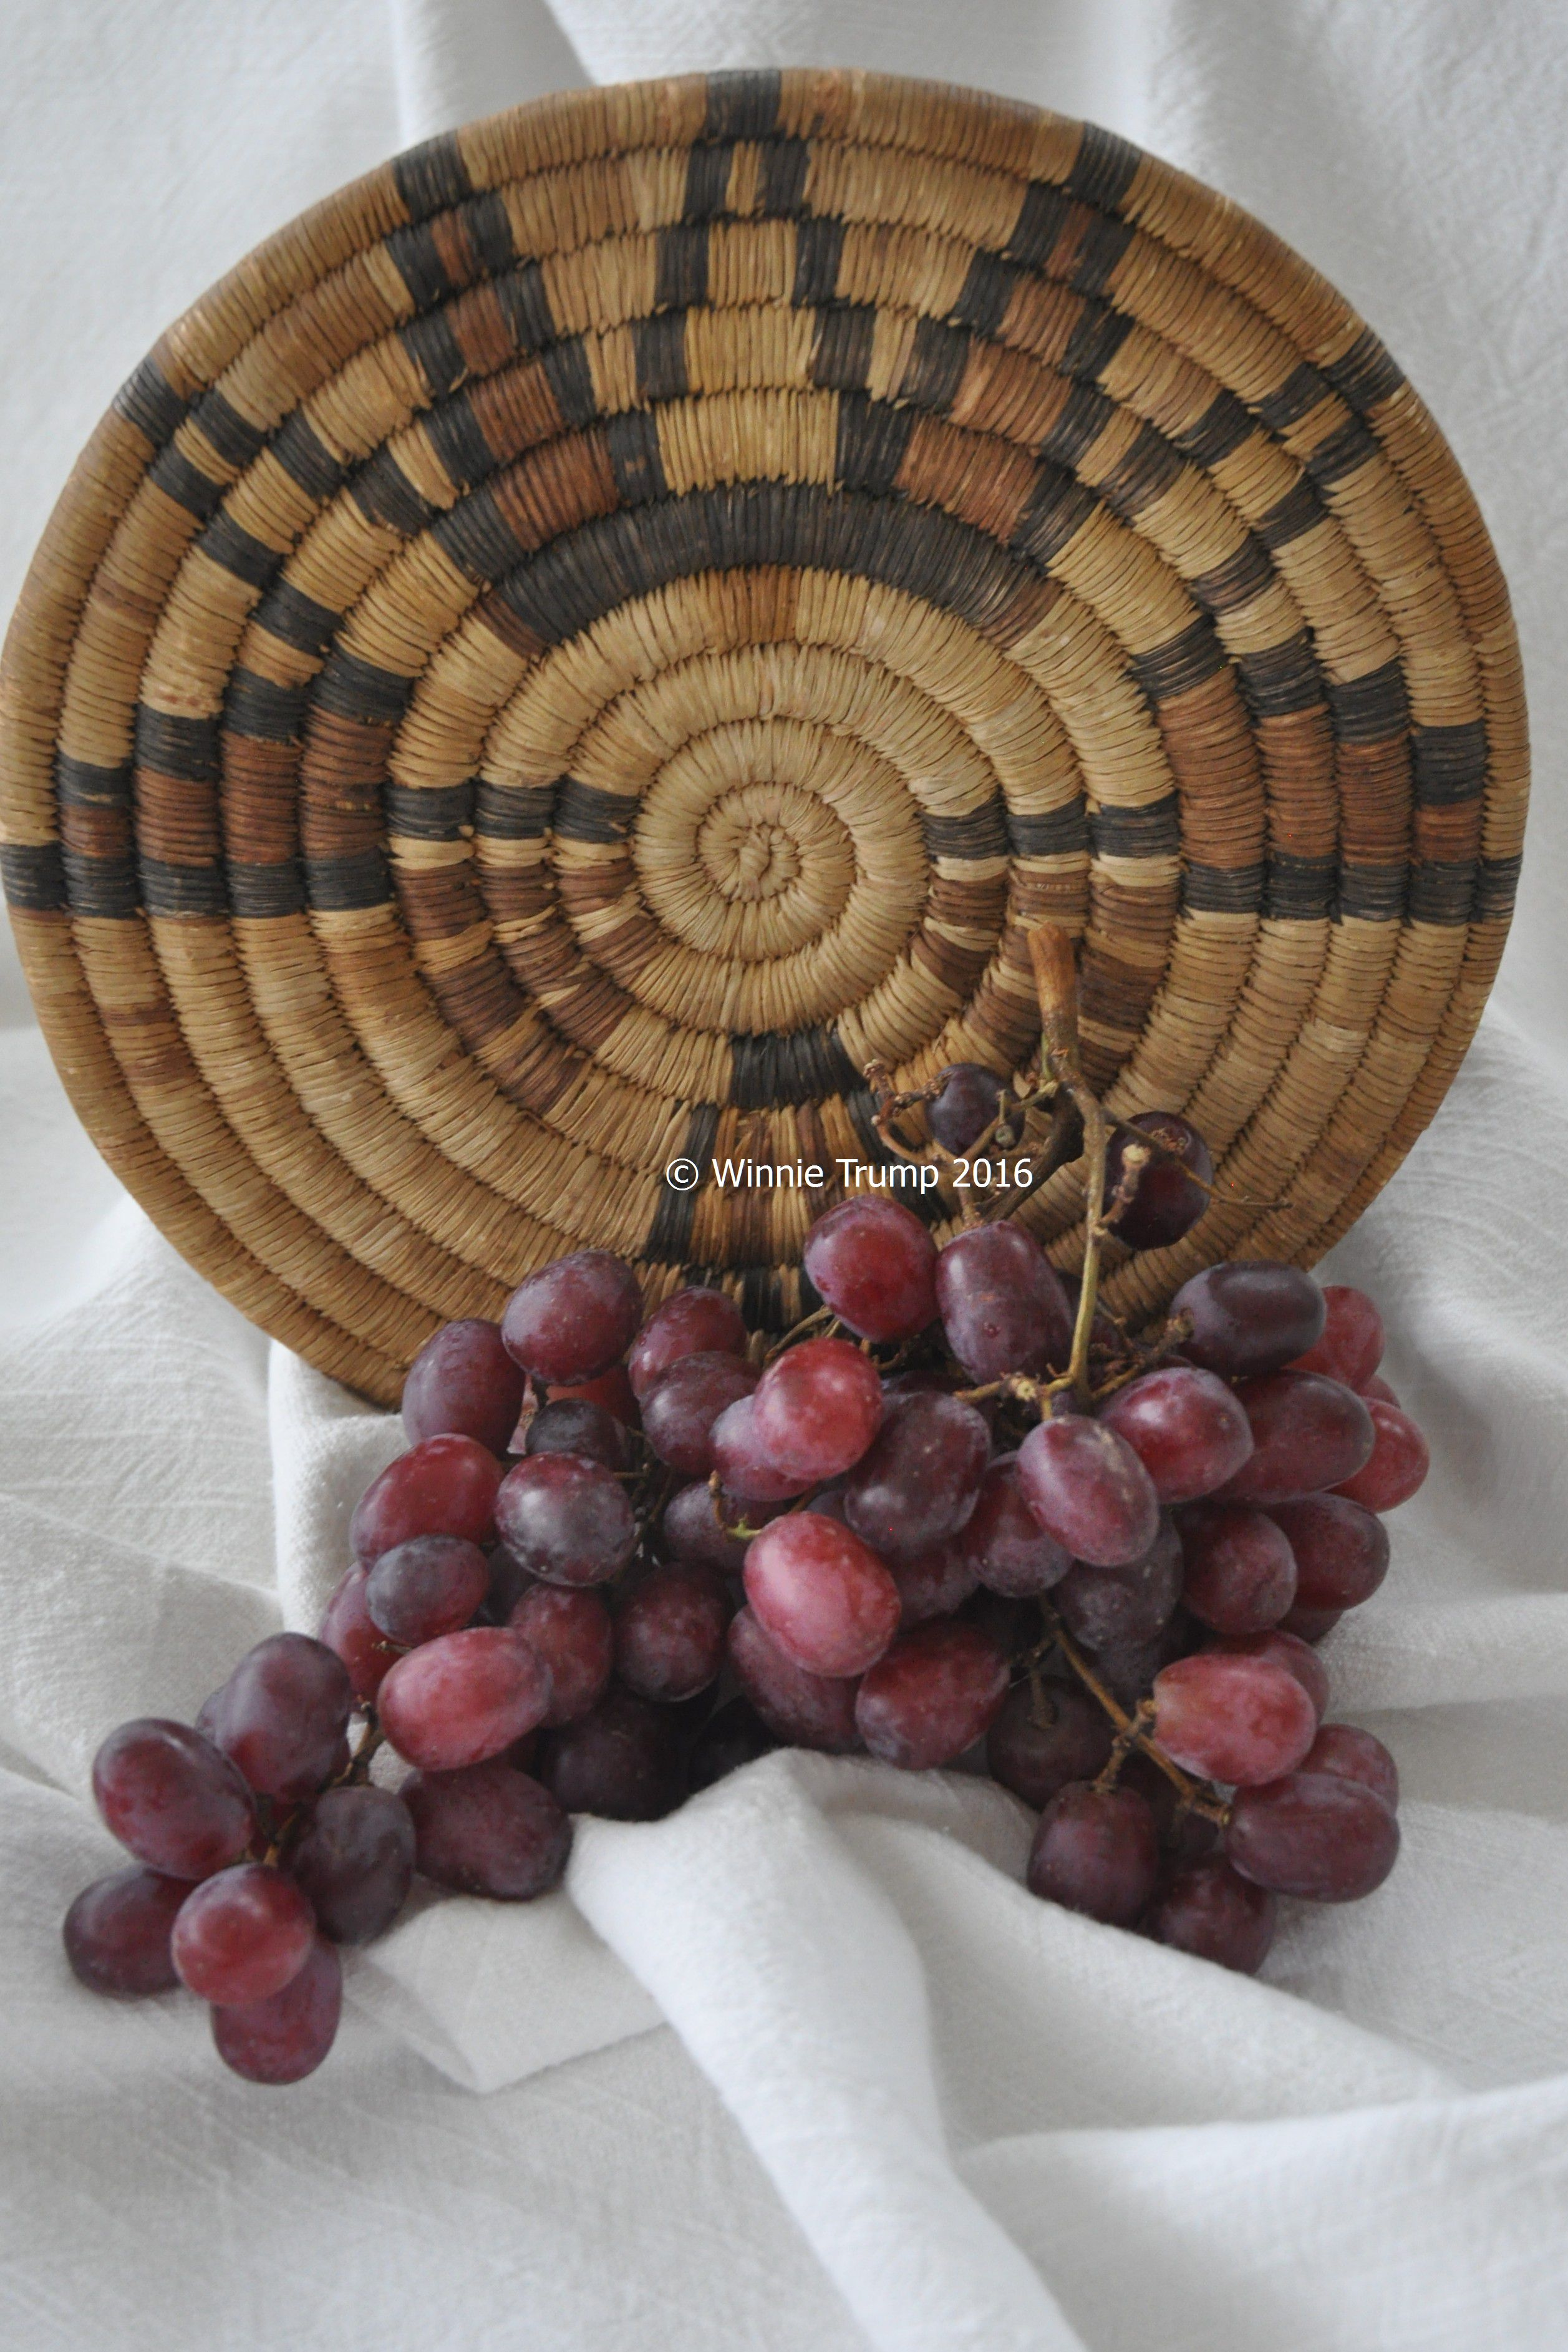 Hopi Tray with Grapes